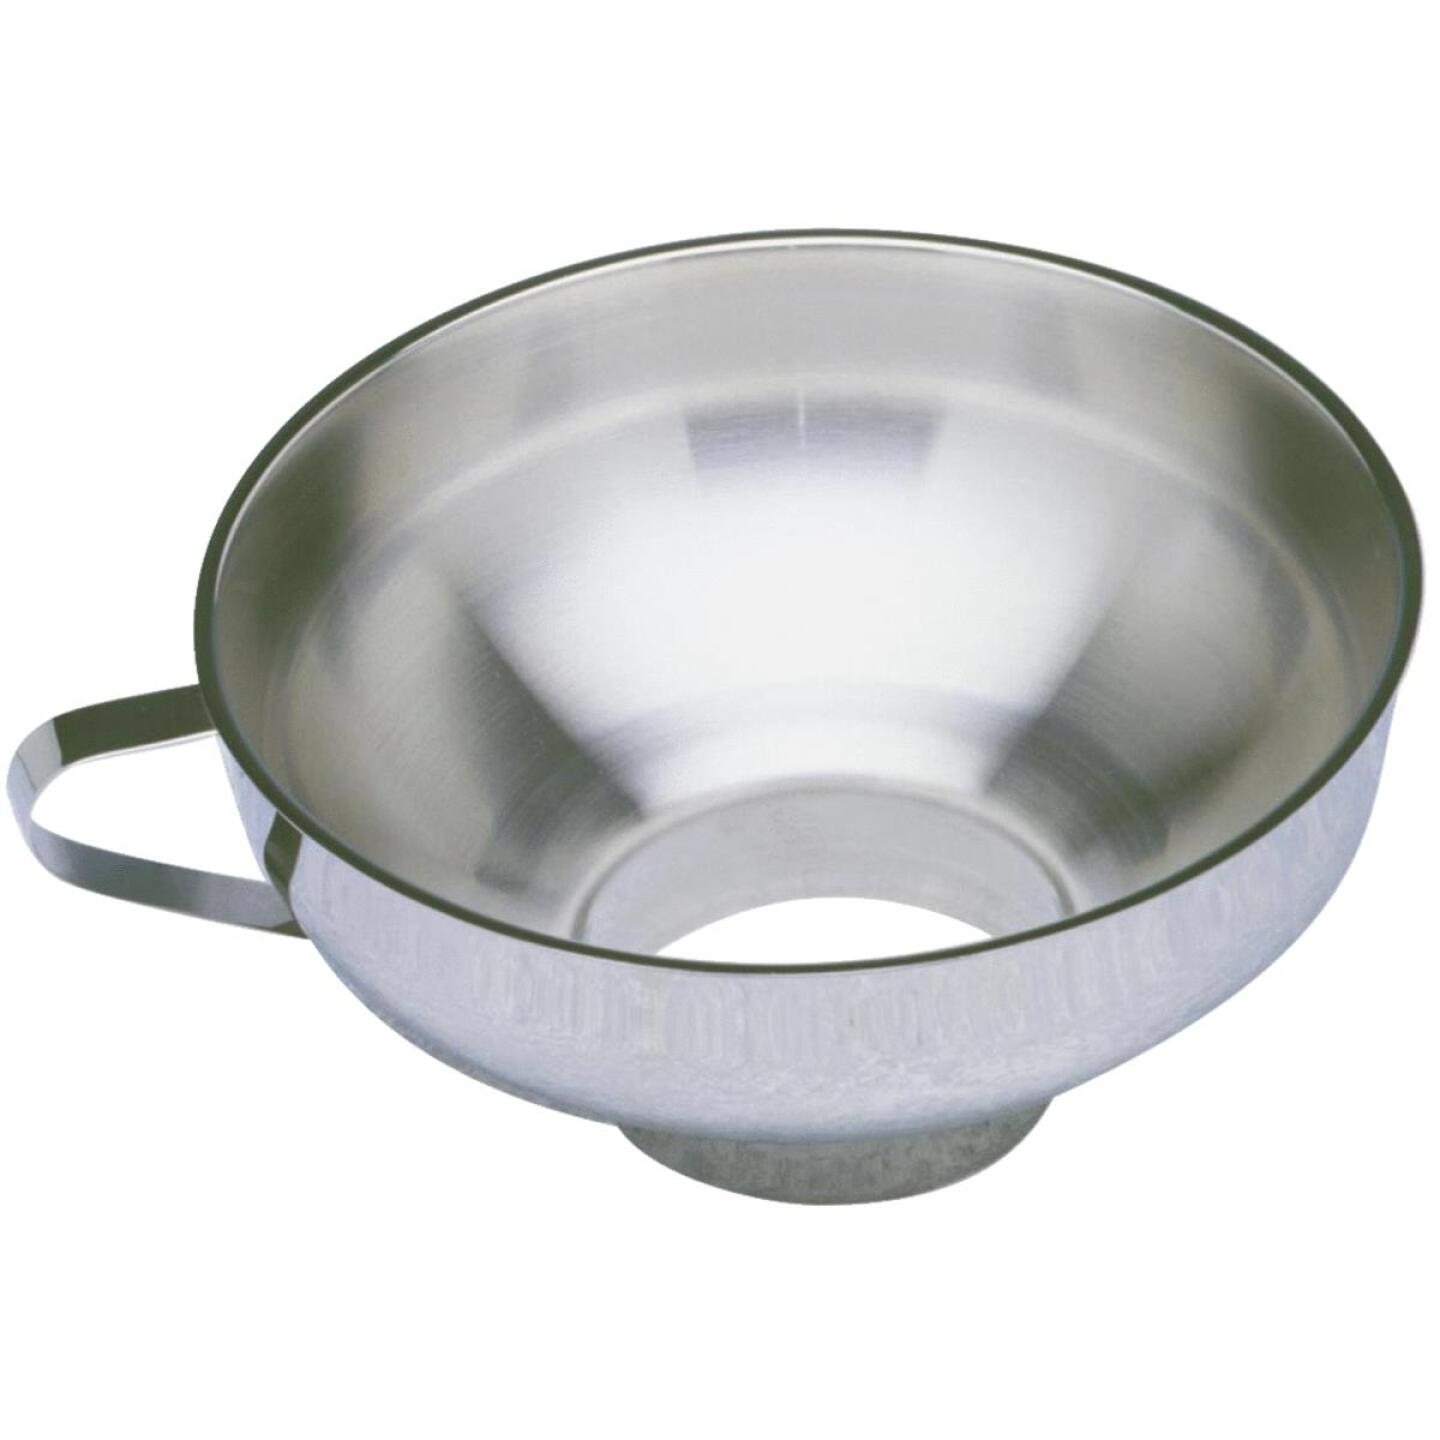 Norpro 4 Oz. Stainless Steel Wide Mouth Funnel Image 1